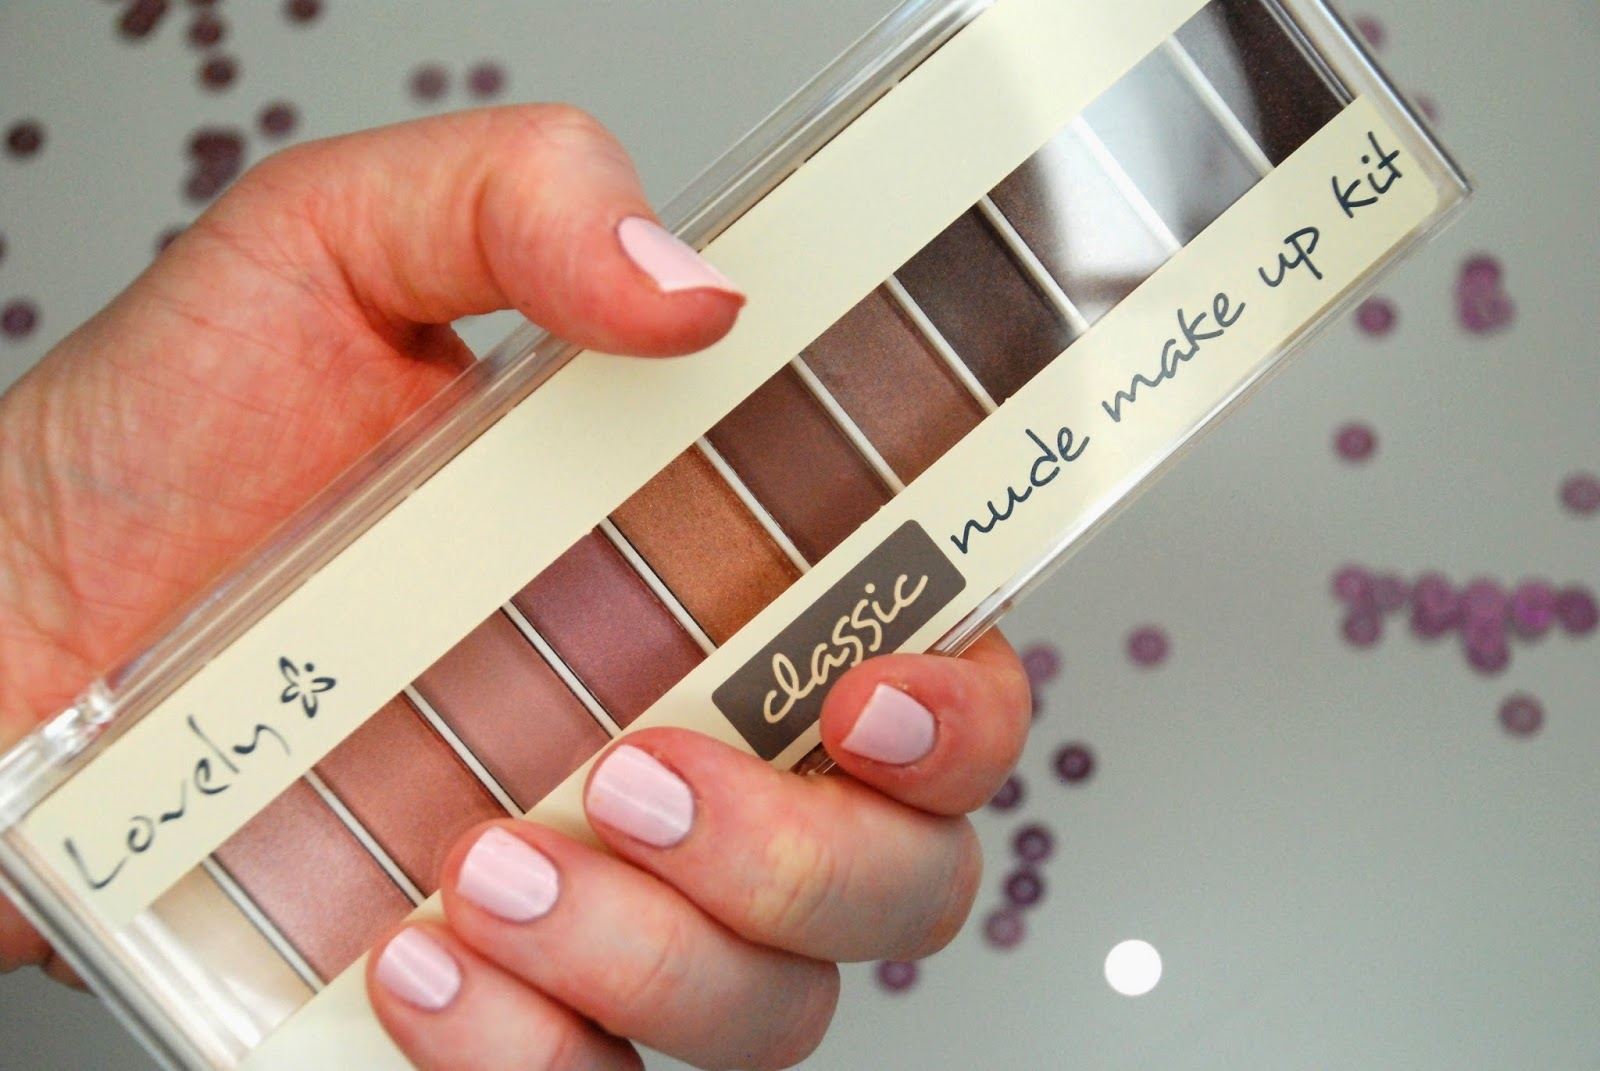 Paletka Lovely Classic Nude Make Up Kit.